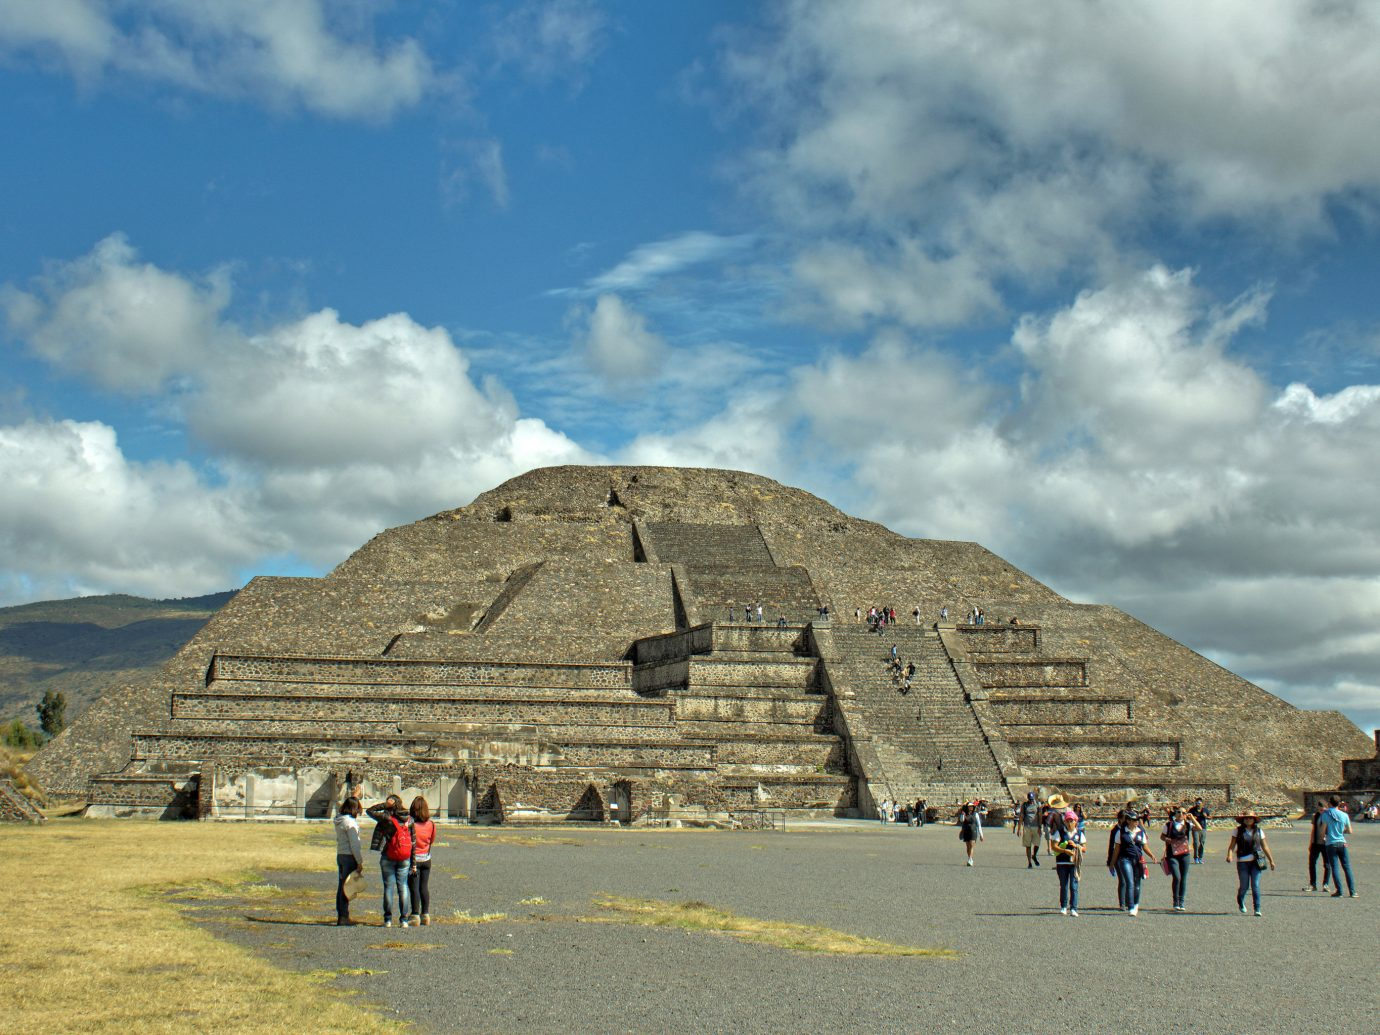 Arts + Culture Mexico City Travel Tips Trip Ideas sky historic site landmark cloud archaeological site ancient history monument tourist attraction pyramid maya civilization tourism unesco world heritage site wonders of the world badlands mountain travel plateau rock